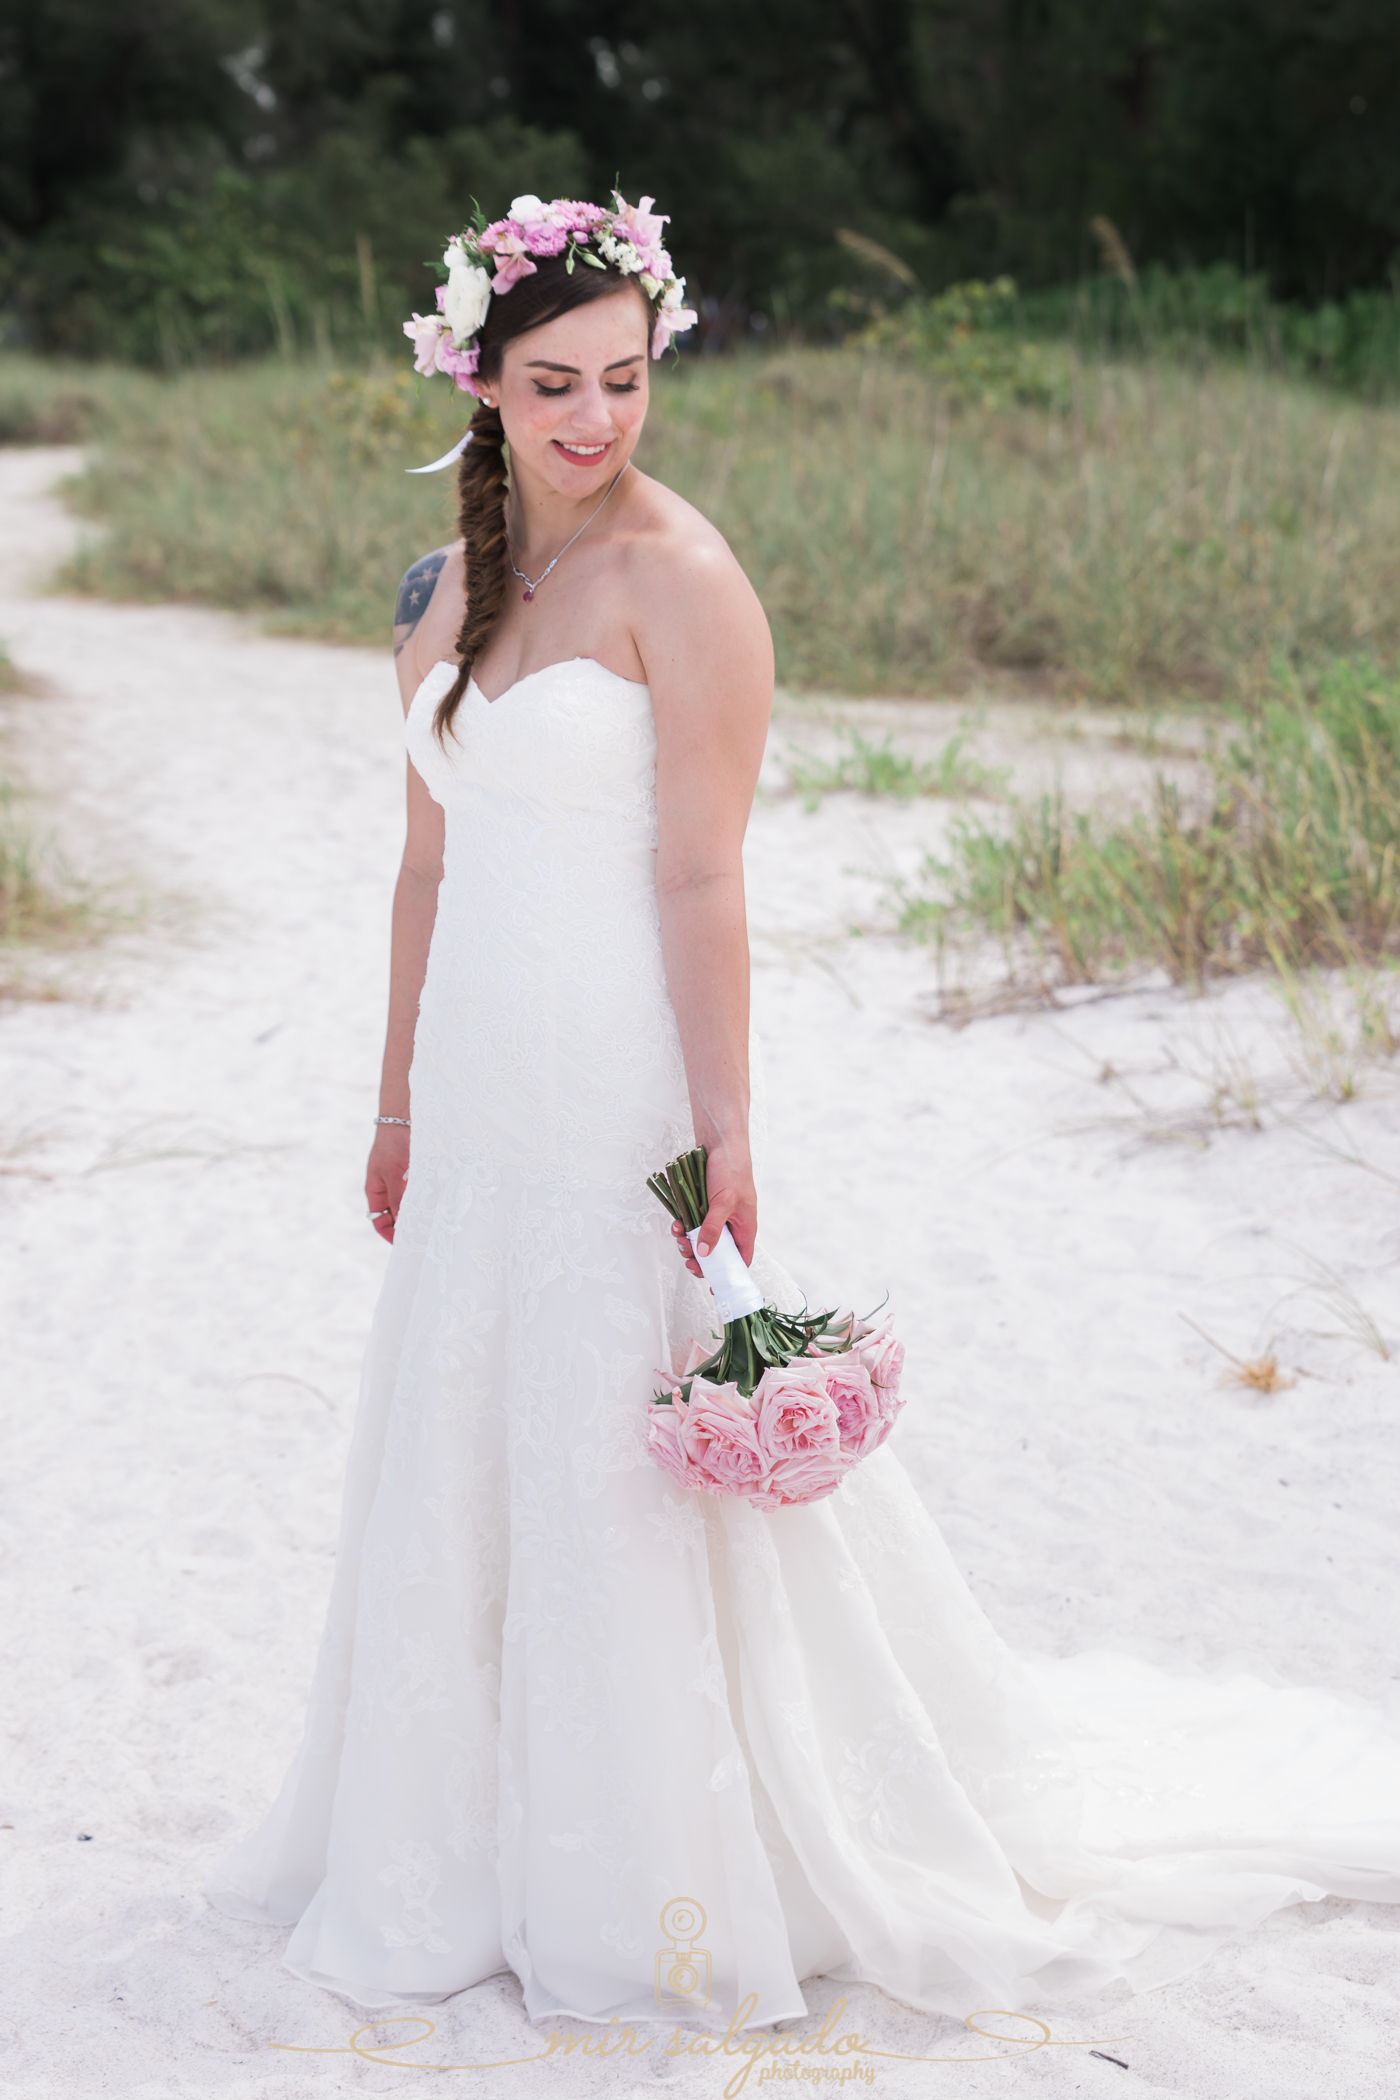 beach-wedding-photo, bride-wedding-photo